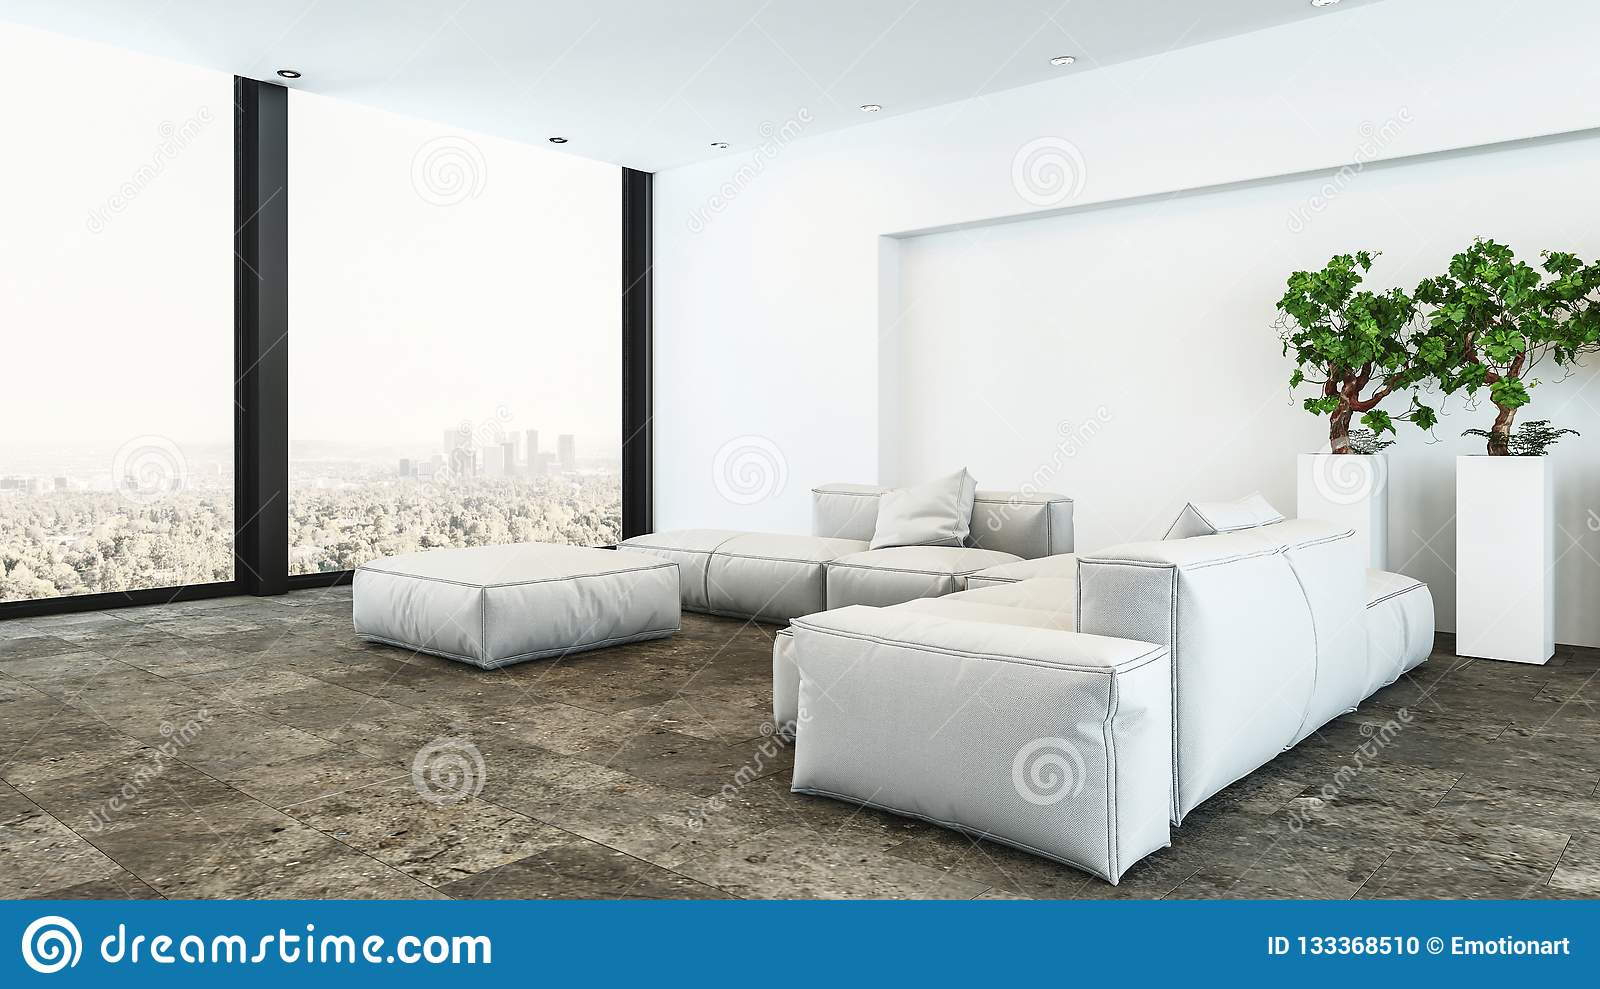 Plush white penthouse living room with city view